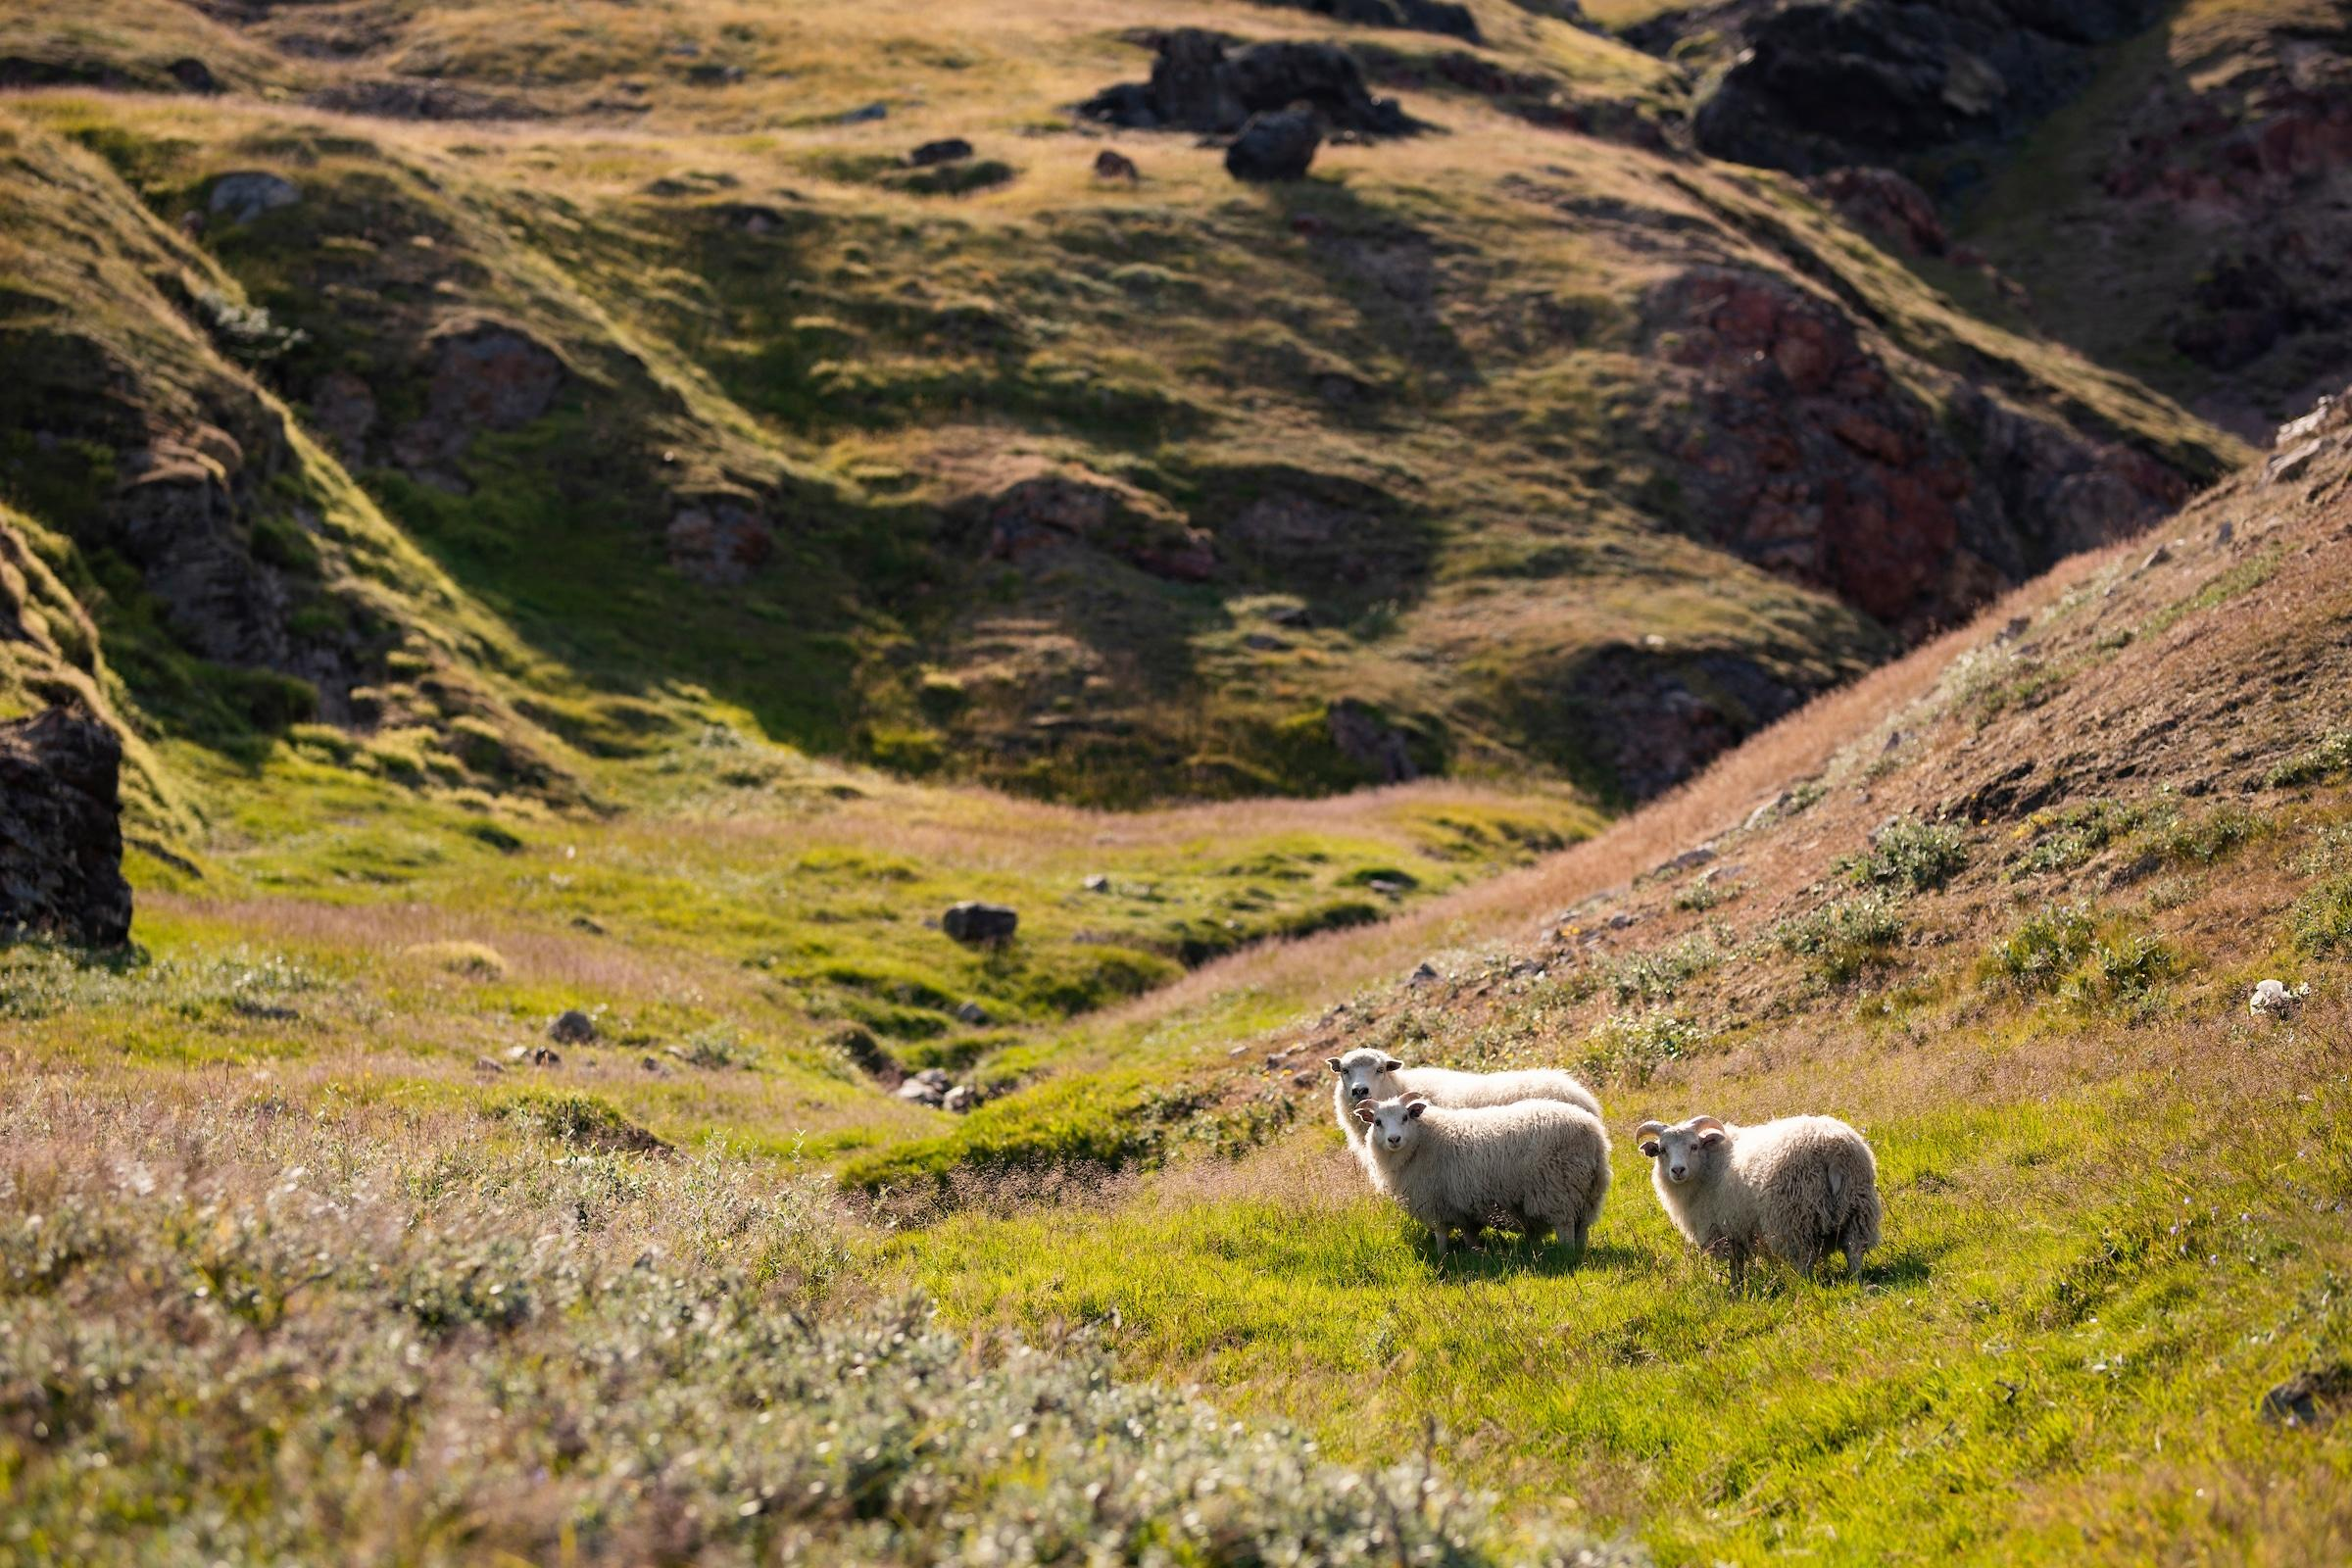 Sheeps in the nature in the South Greenland. Photo by Aningaaq R Carlsen - Visit Greenland